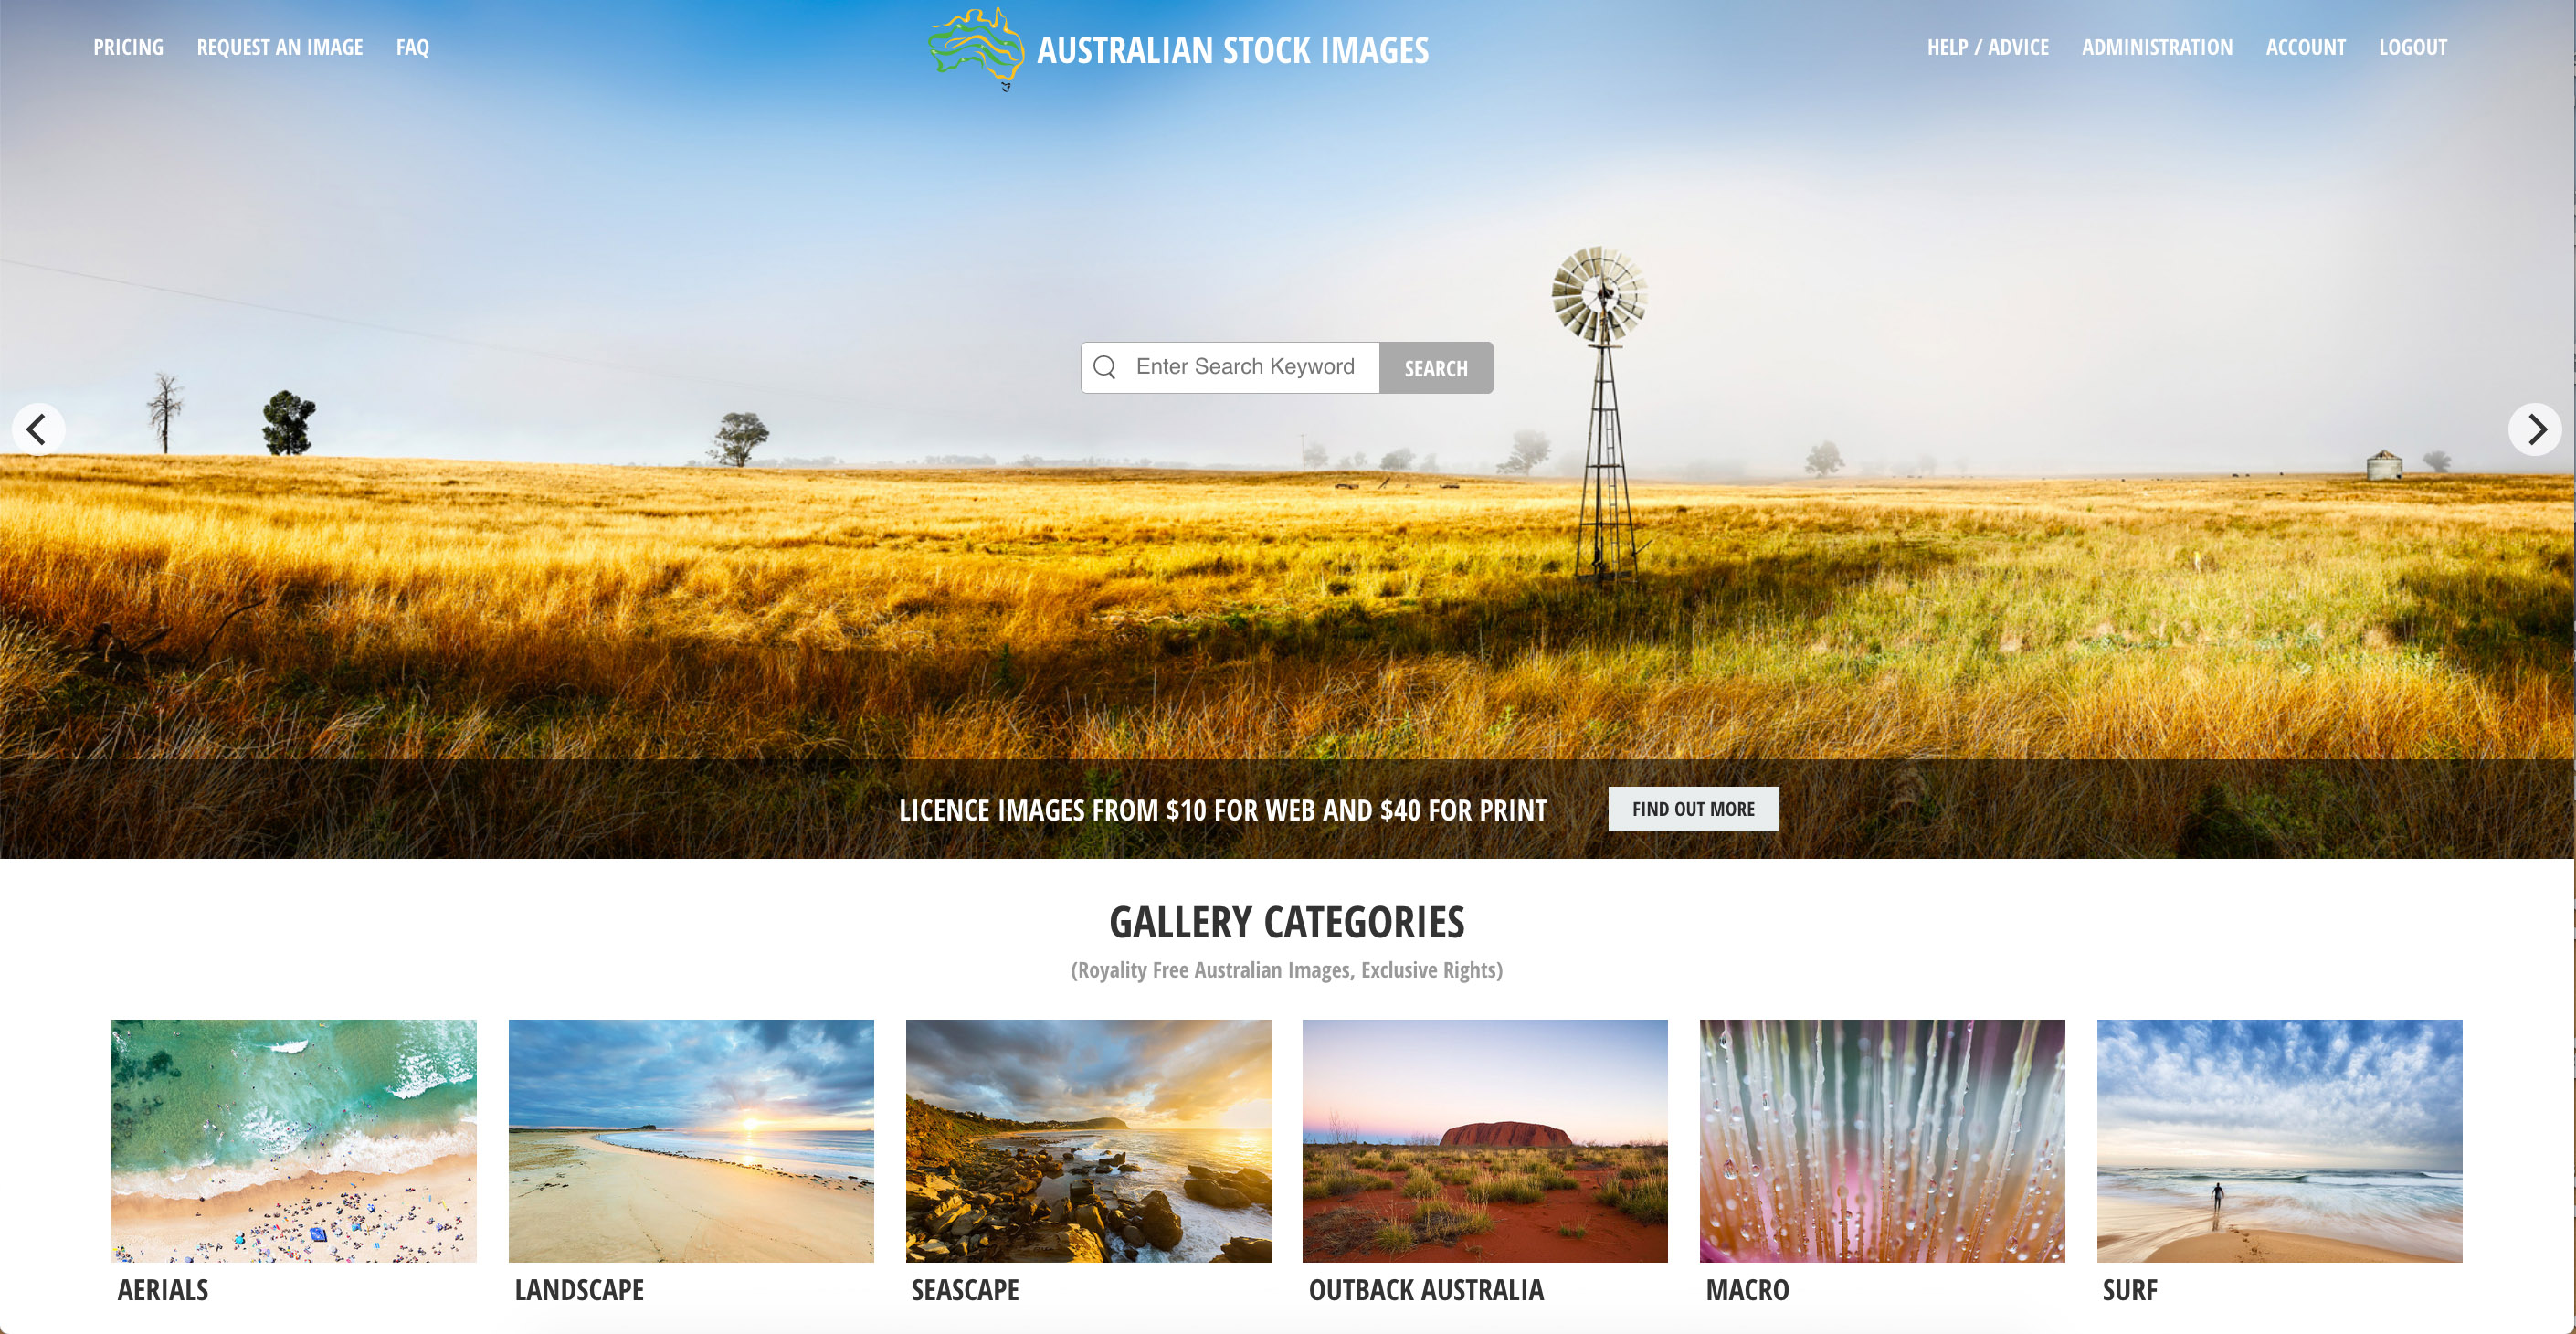 The Australian Stock Images Website